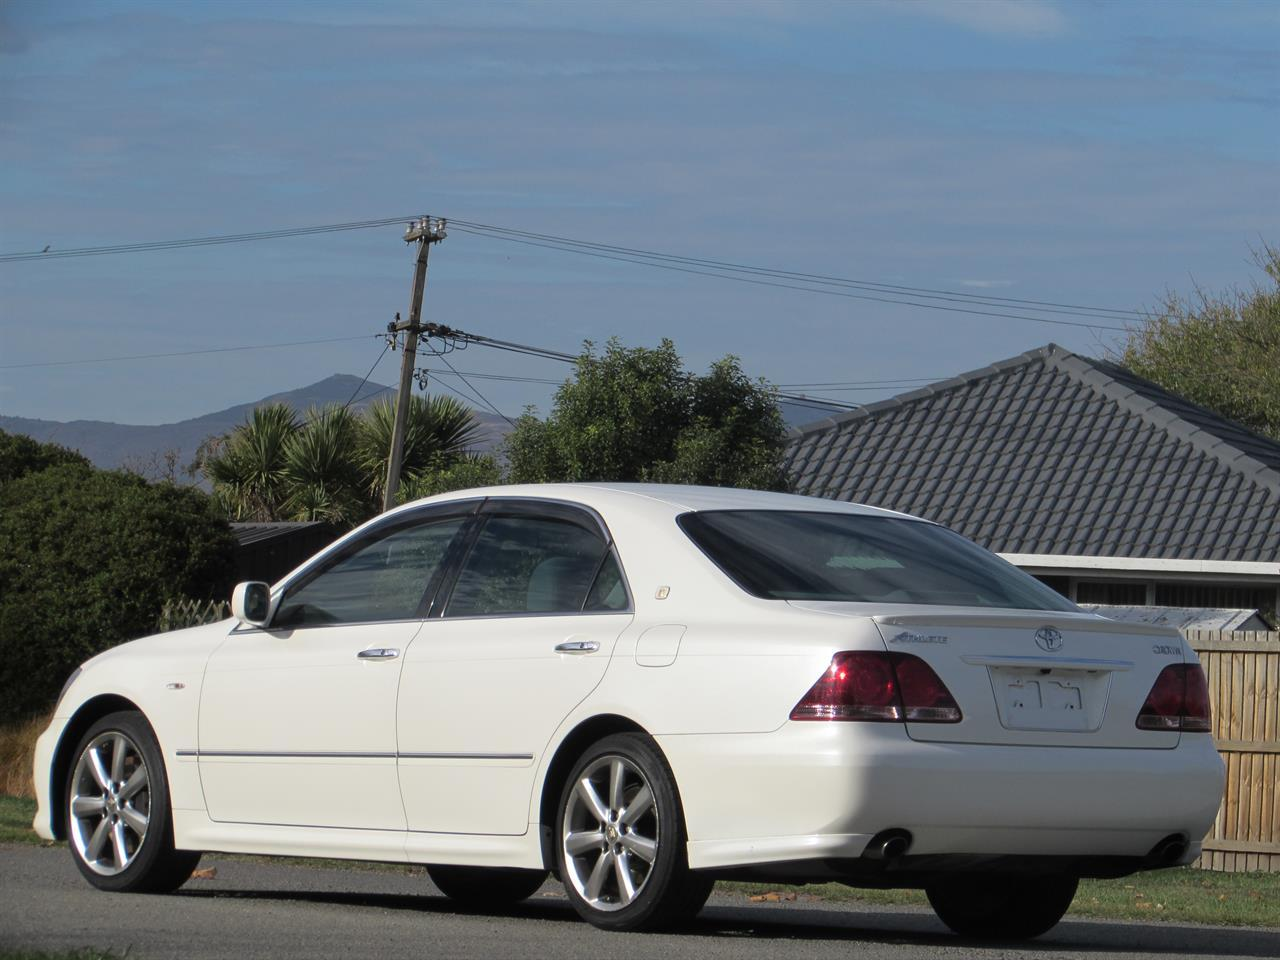 image-3, 2006 Toyota Crown Athlete at Christchurch